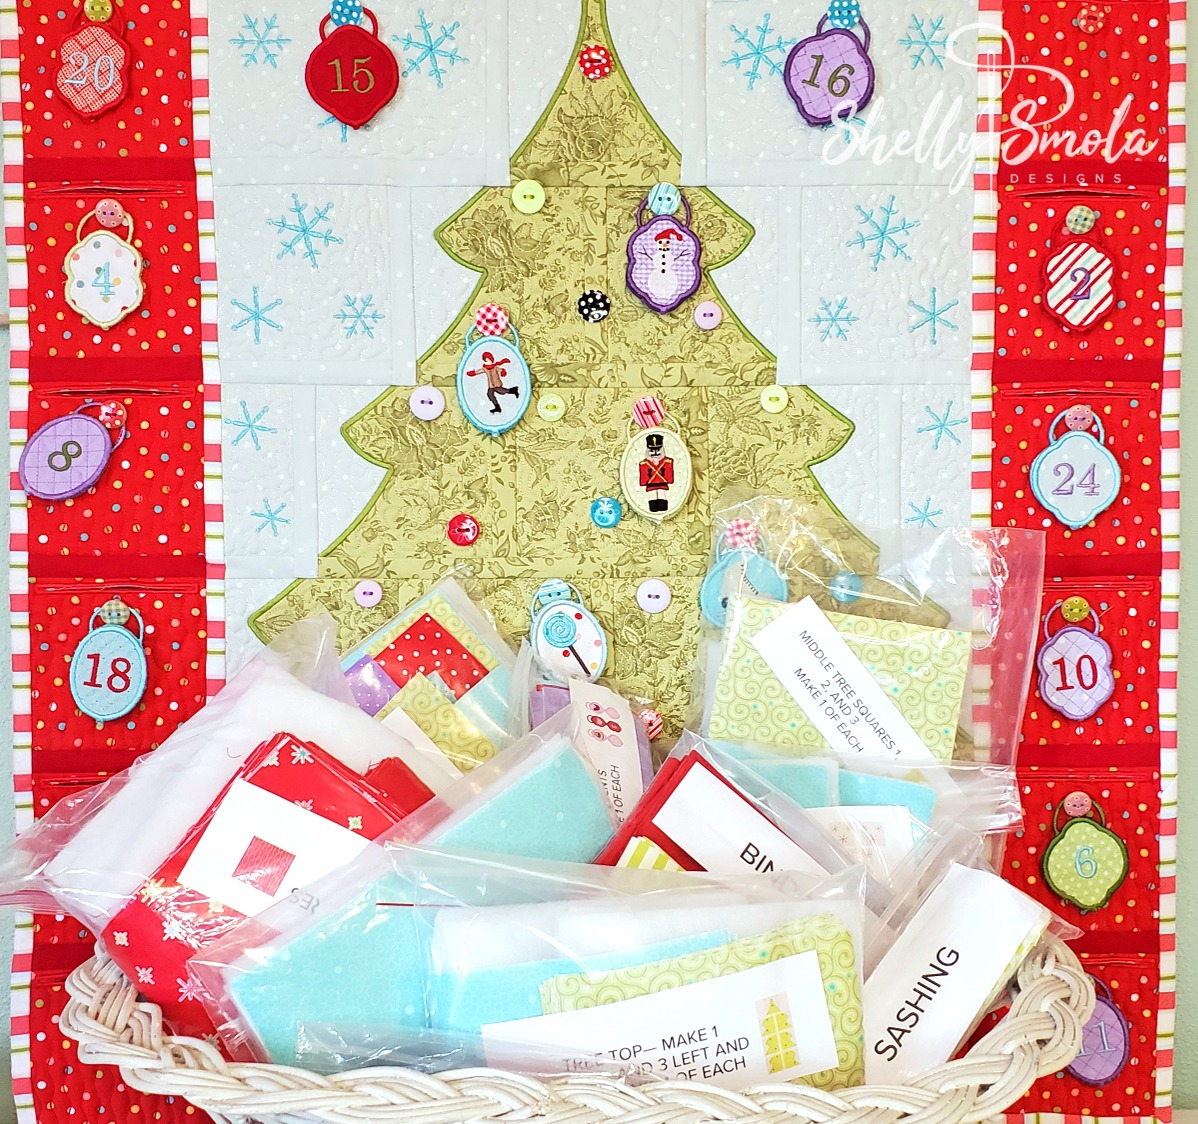 Christmas Countdown Kit by Shelly Smola